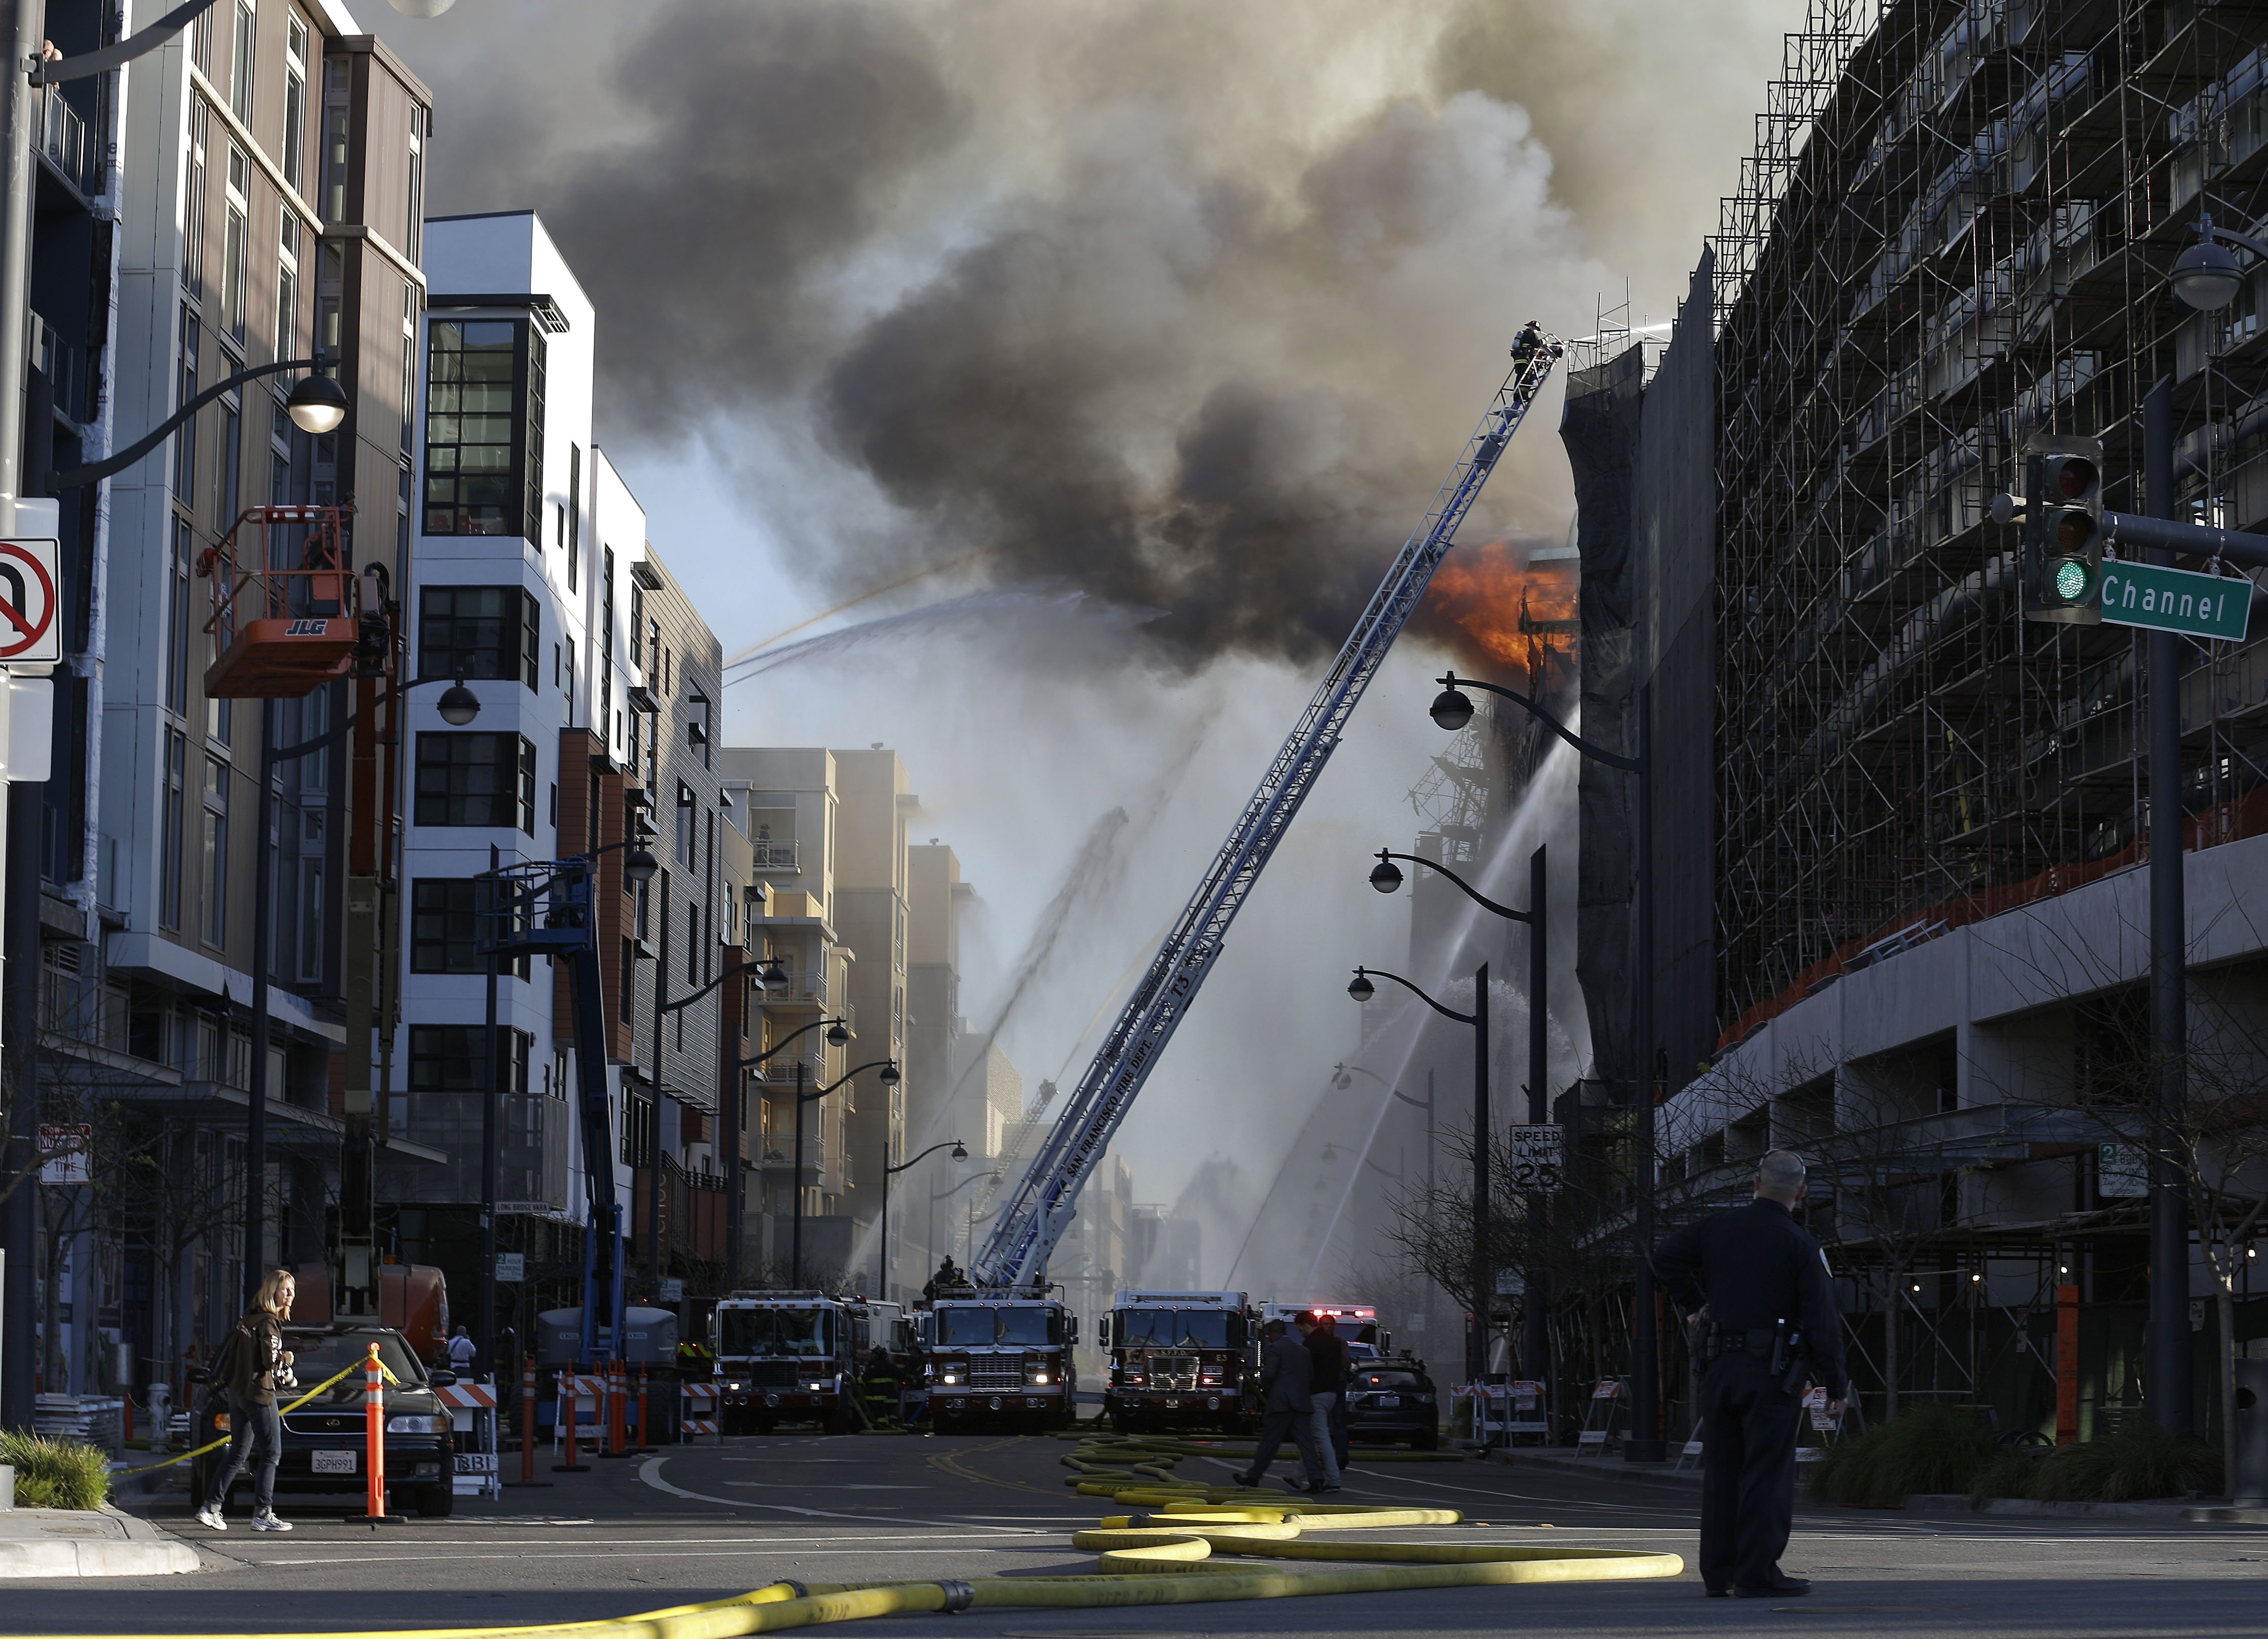 Firefighters battle a fire burning in San Francisco, March 11, 2014.